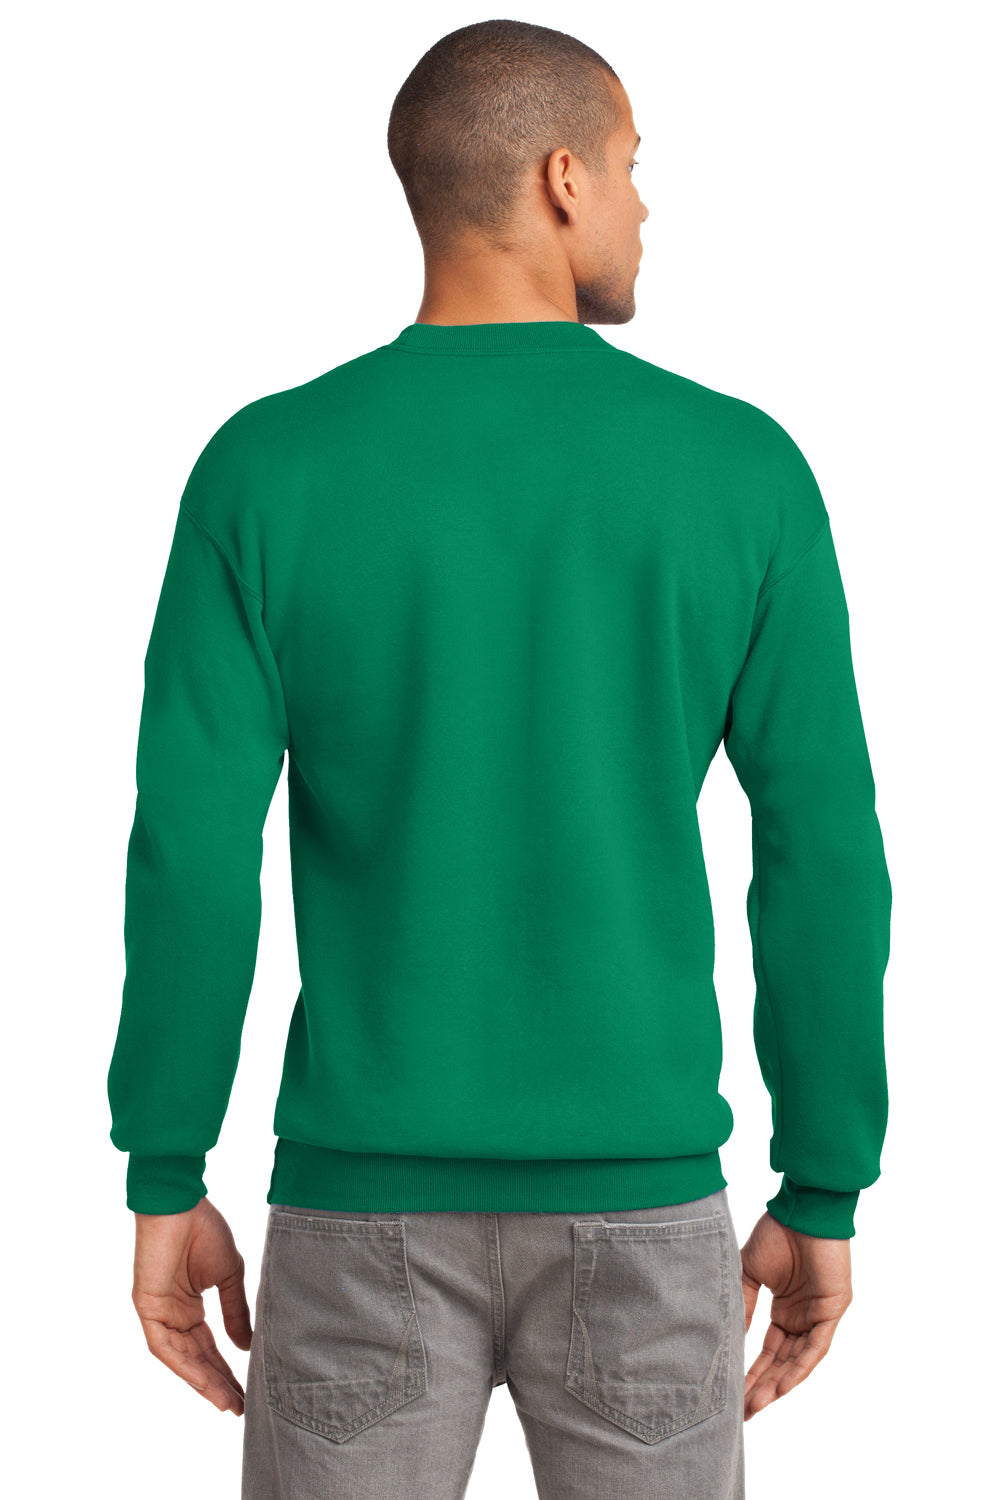 Port & Company PC90 Mens Essential Fleece Crewneck Sweatshirt Kelly Green Back